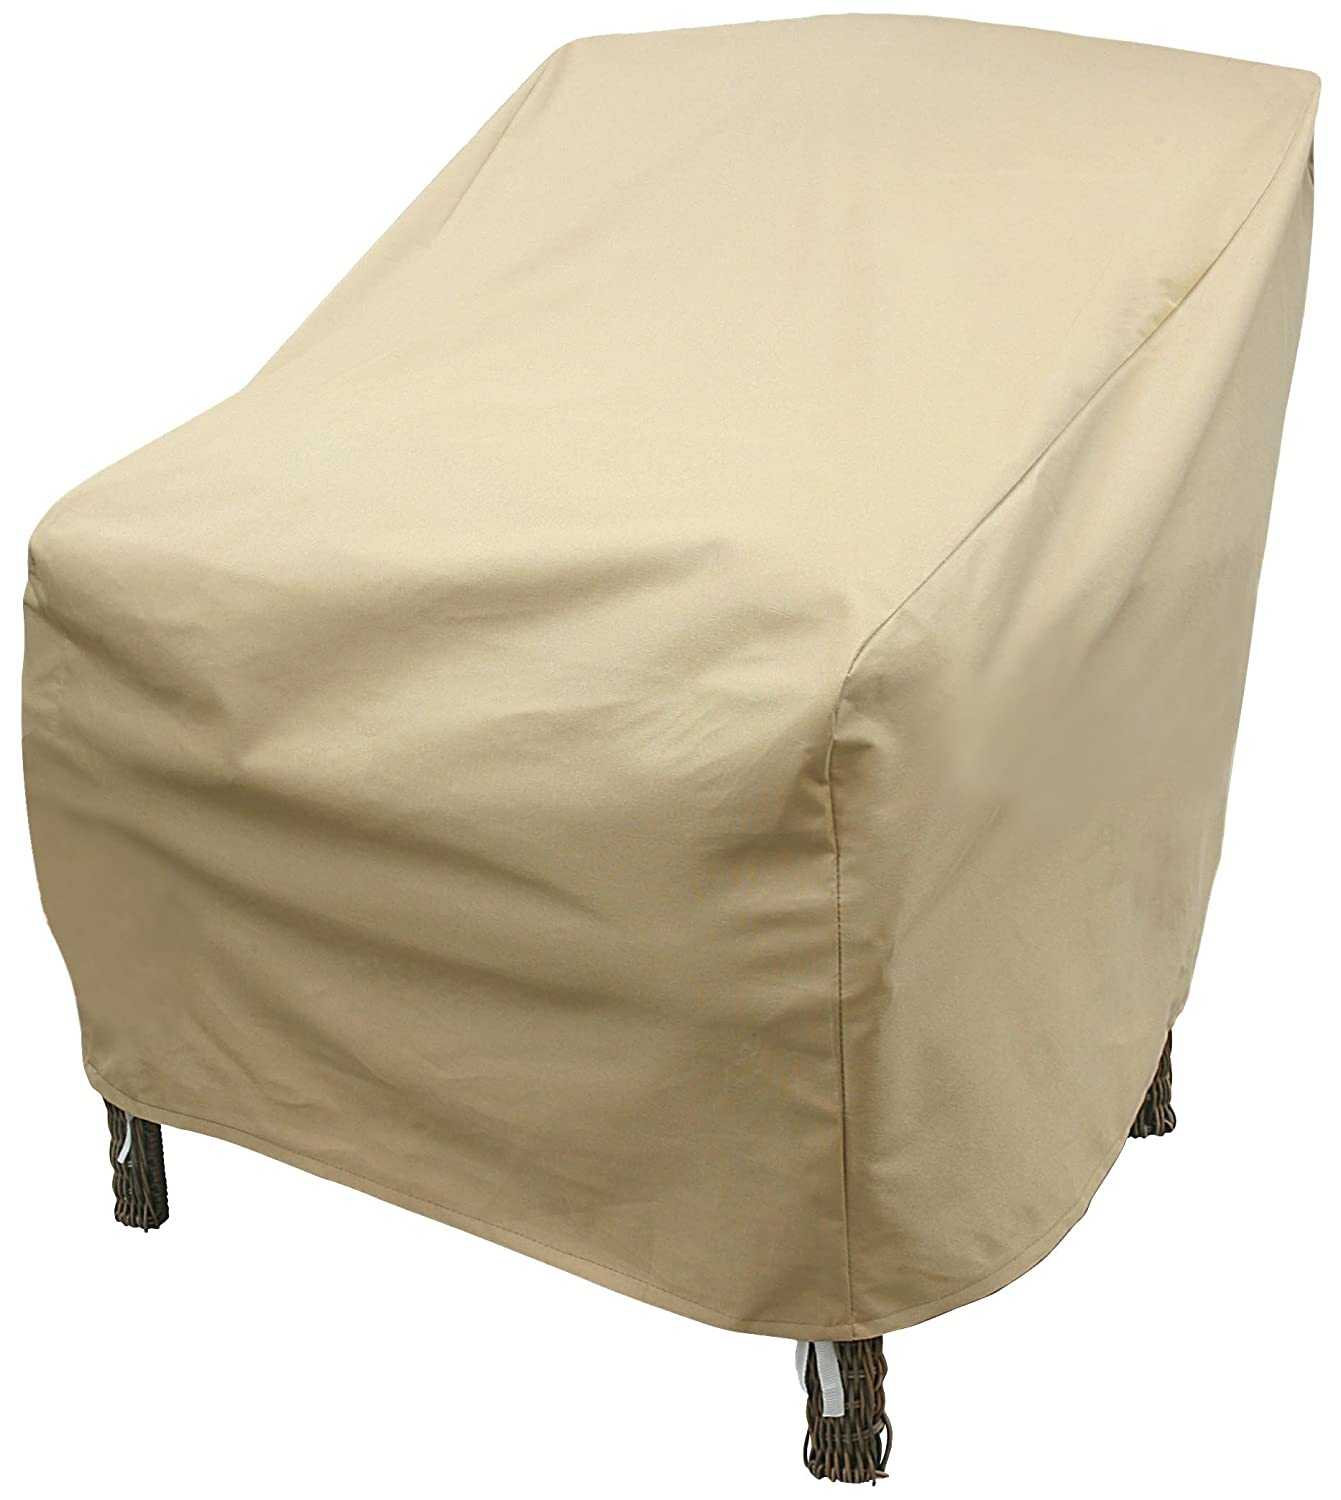 Waterproof outdoor furniture covers patio furniture covers for Patio furniture covers